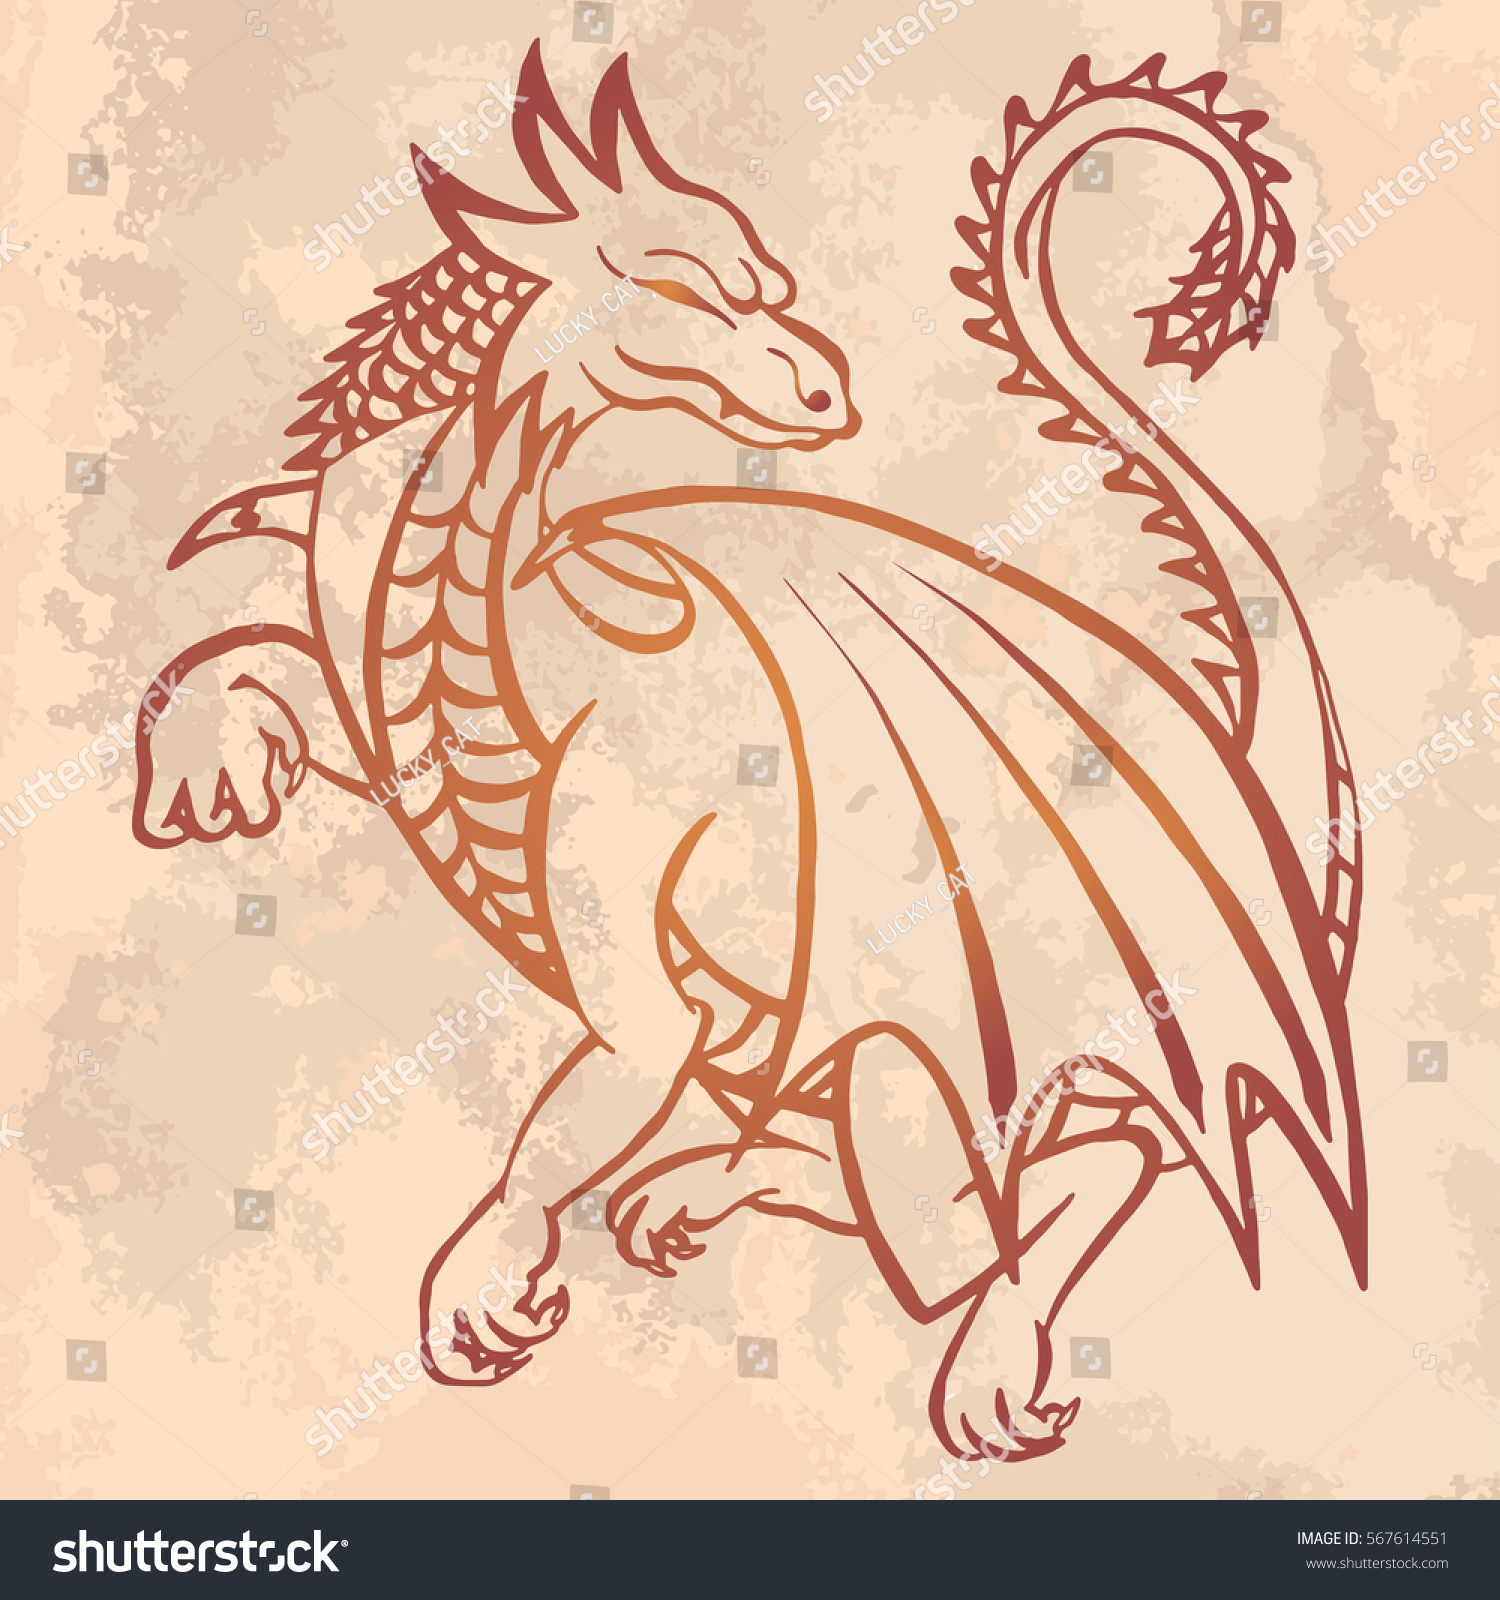 illustration hand drawn dragon on vintage stock vector 567614551 shutterstock. Black Bedroom Furniture Sets. Home Design Ideas